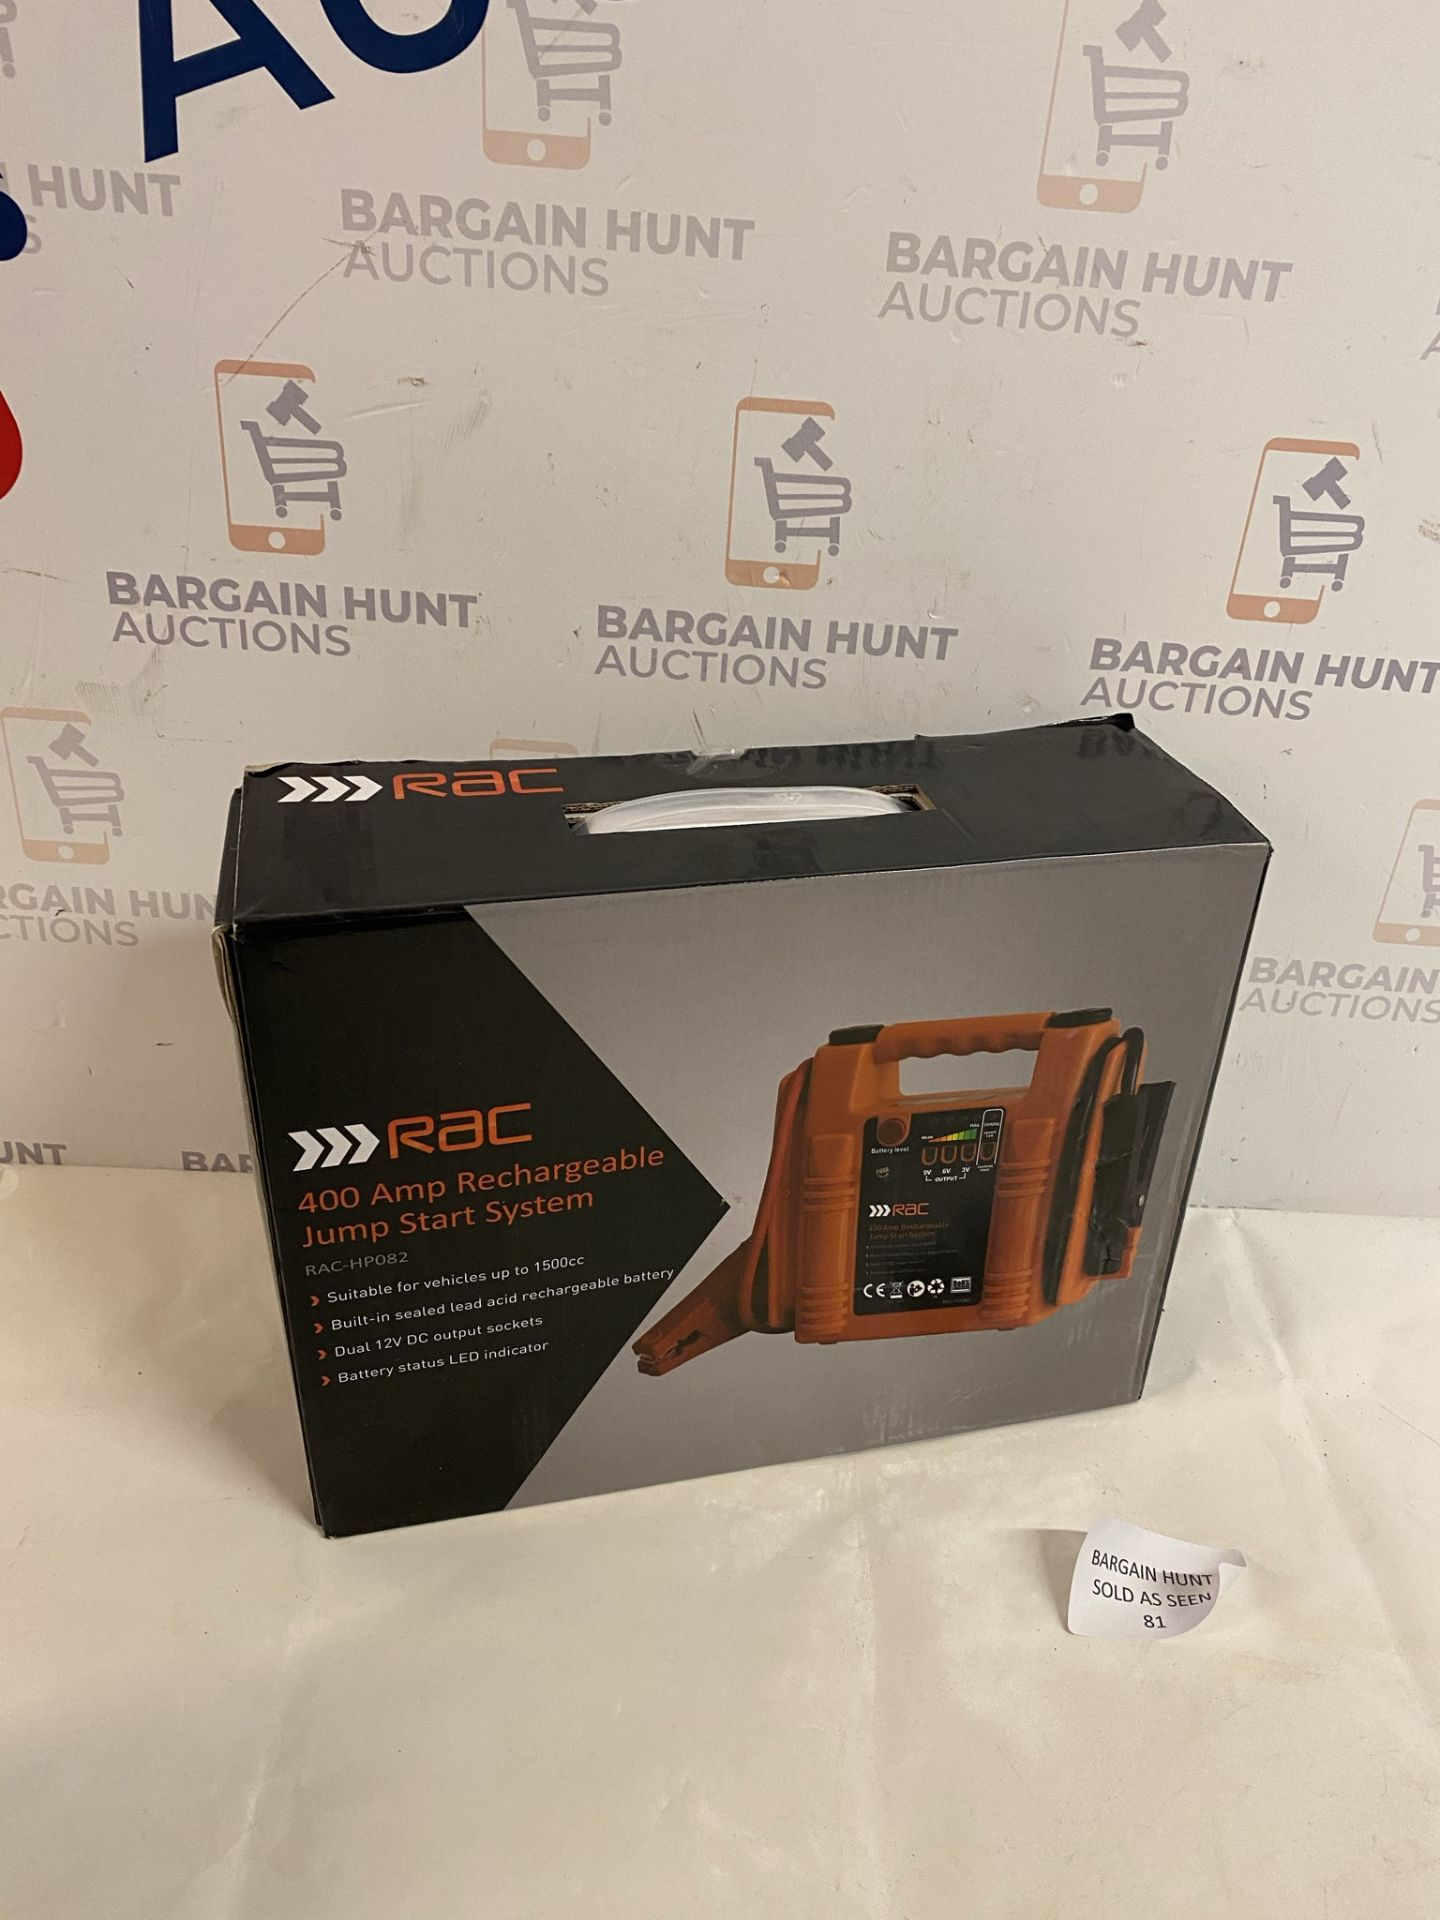 RAC 400 Amp Rechargeable Jump Start System RRP £45